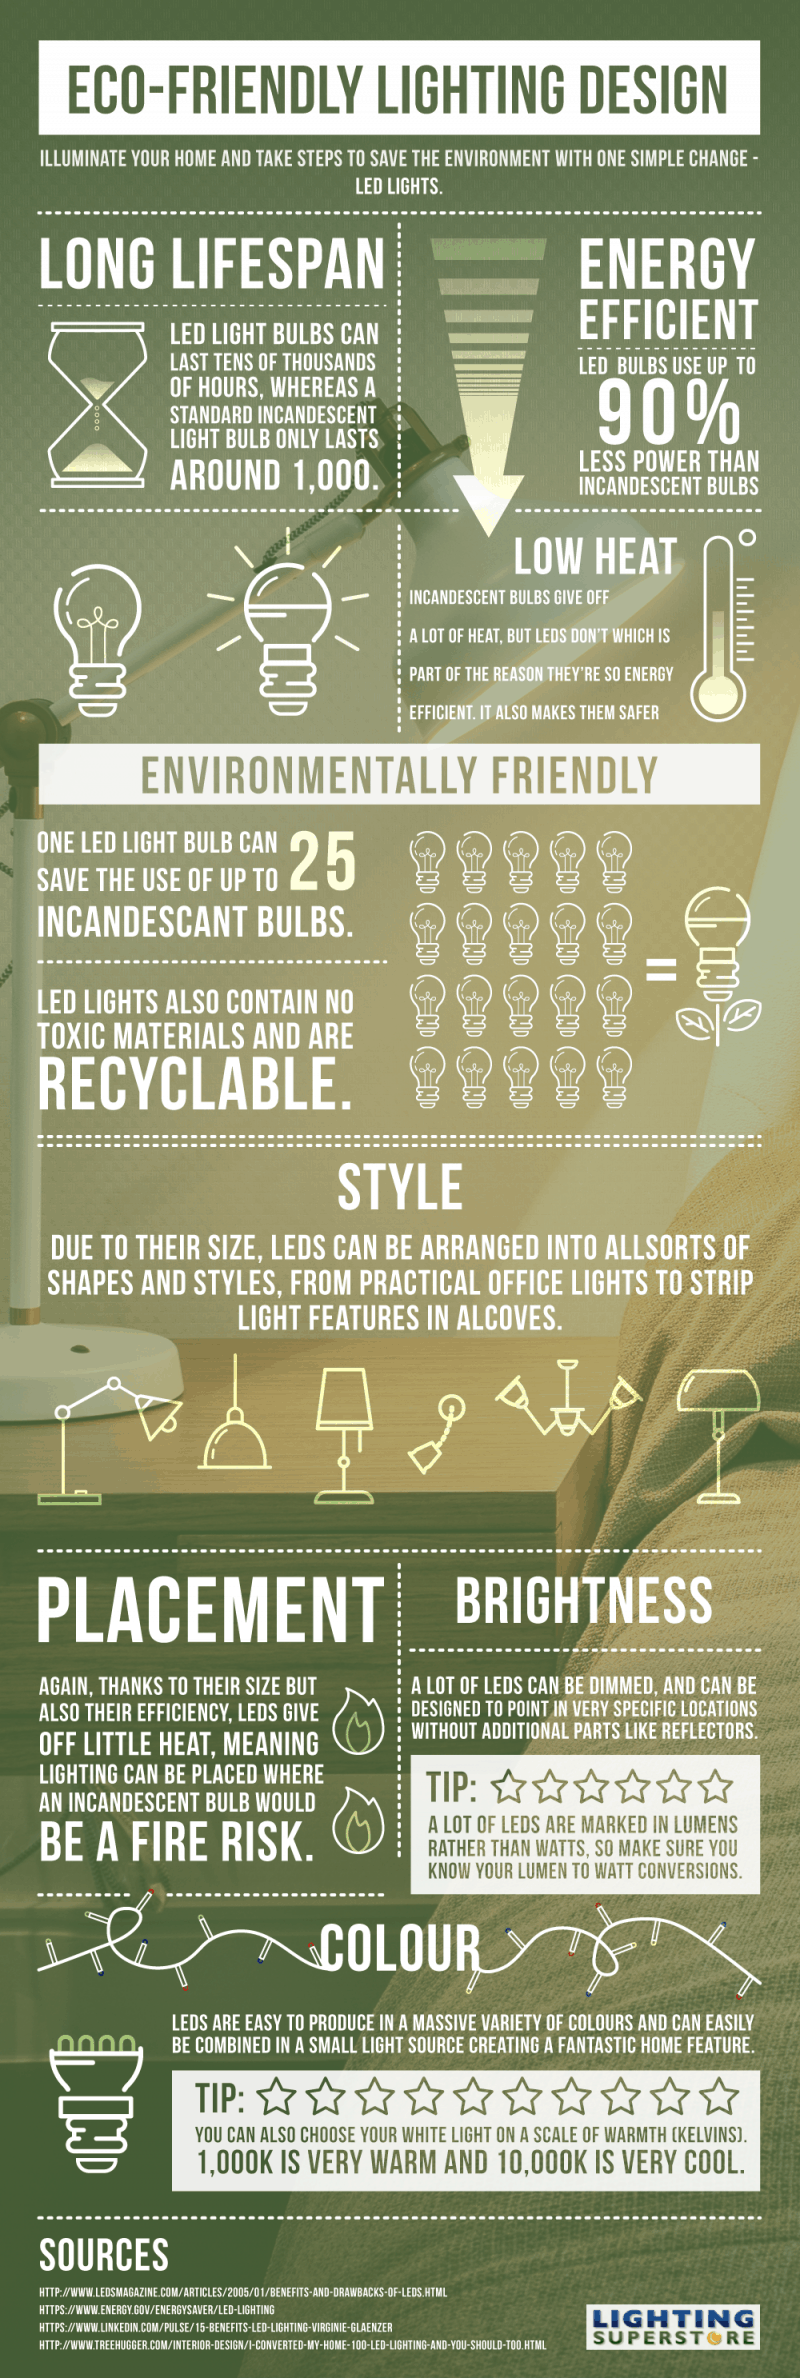 Eco-Friendly Lighting Design